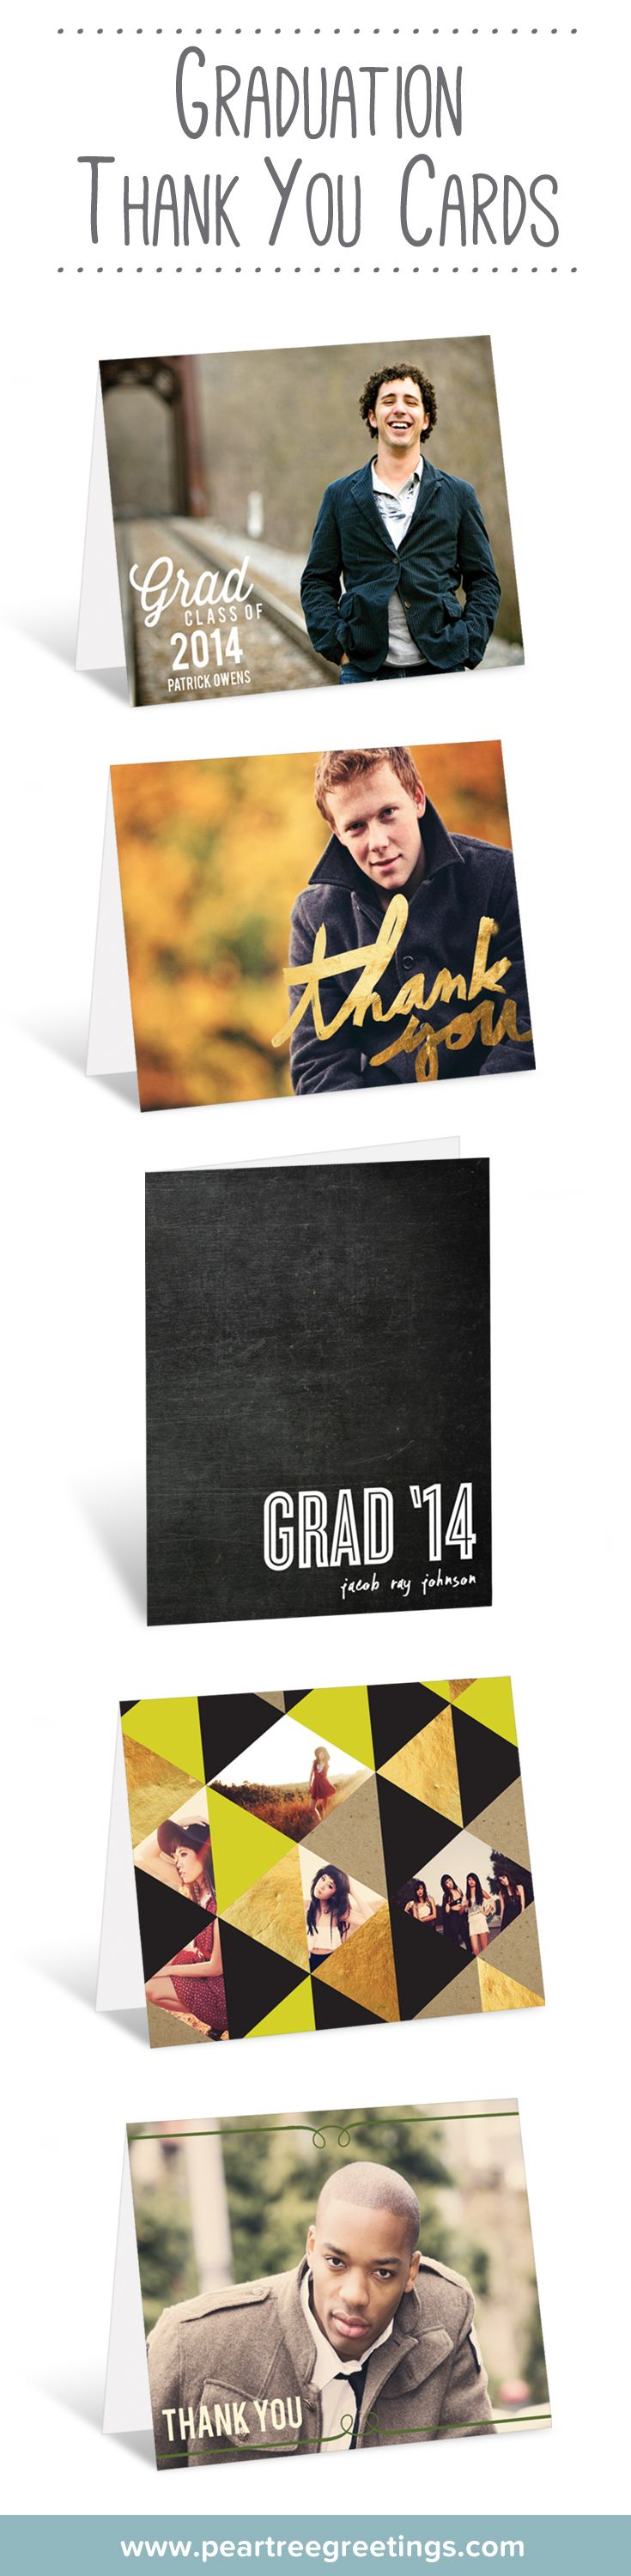 Graduation thank you cards because every gift deserves a thank you.